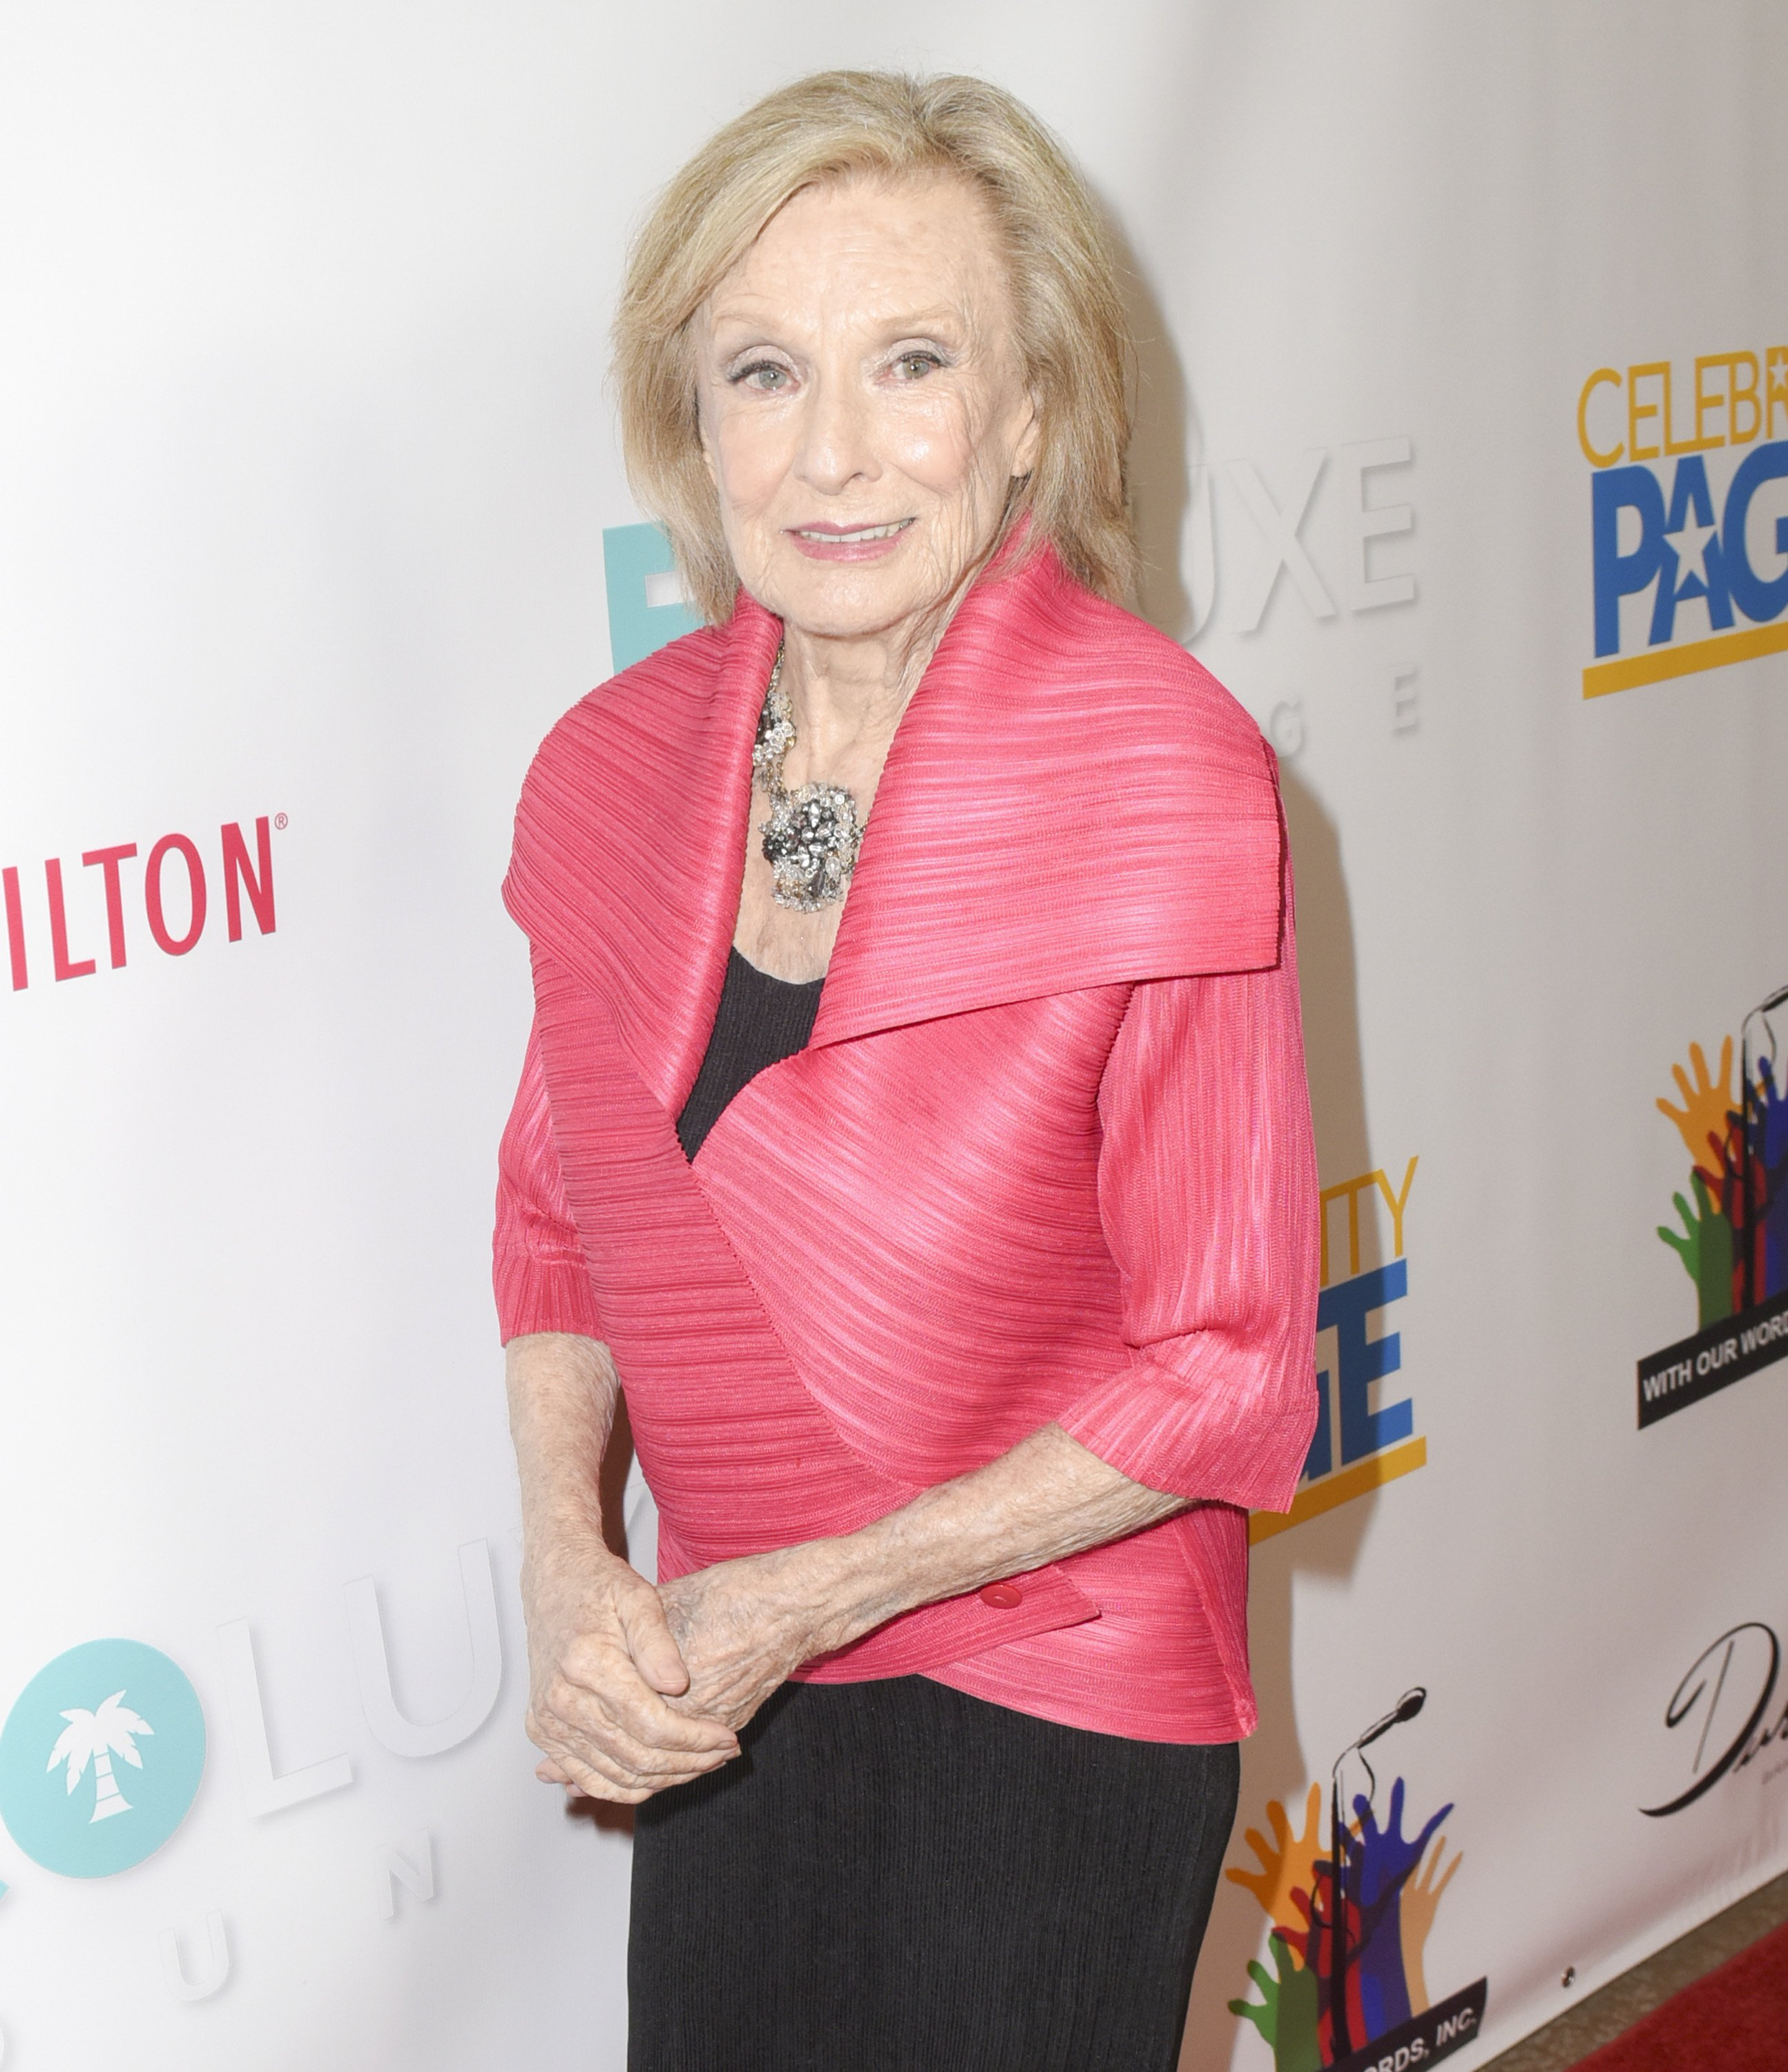 Cloris Leachman at EcoLuxe Pre-Oscars Lounge at The Beverly Hilton Hotel on March 2, 2018 in Beverly Hills, California | Photo: Getty Images